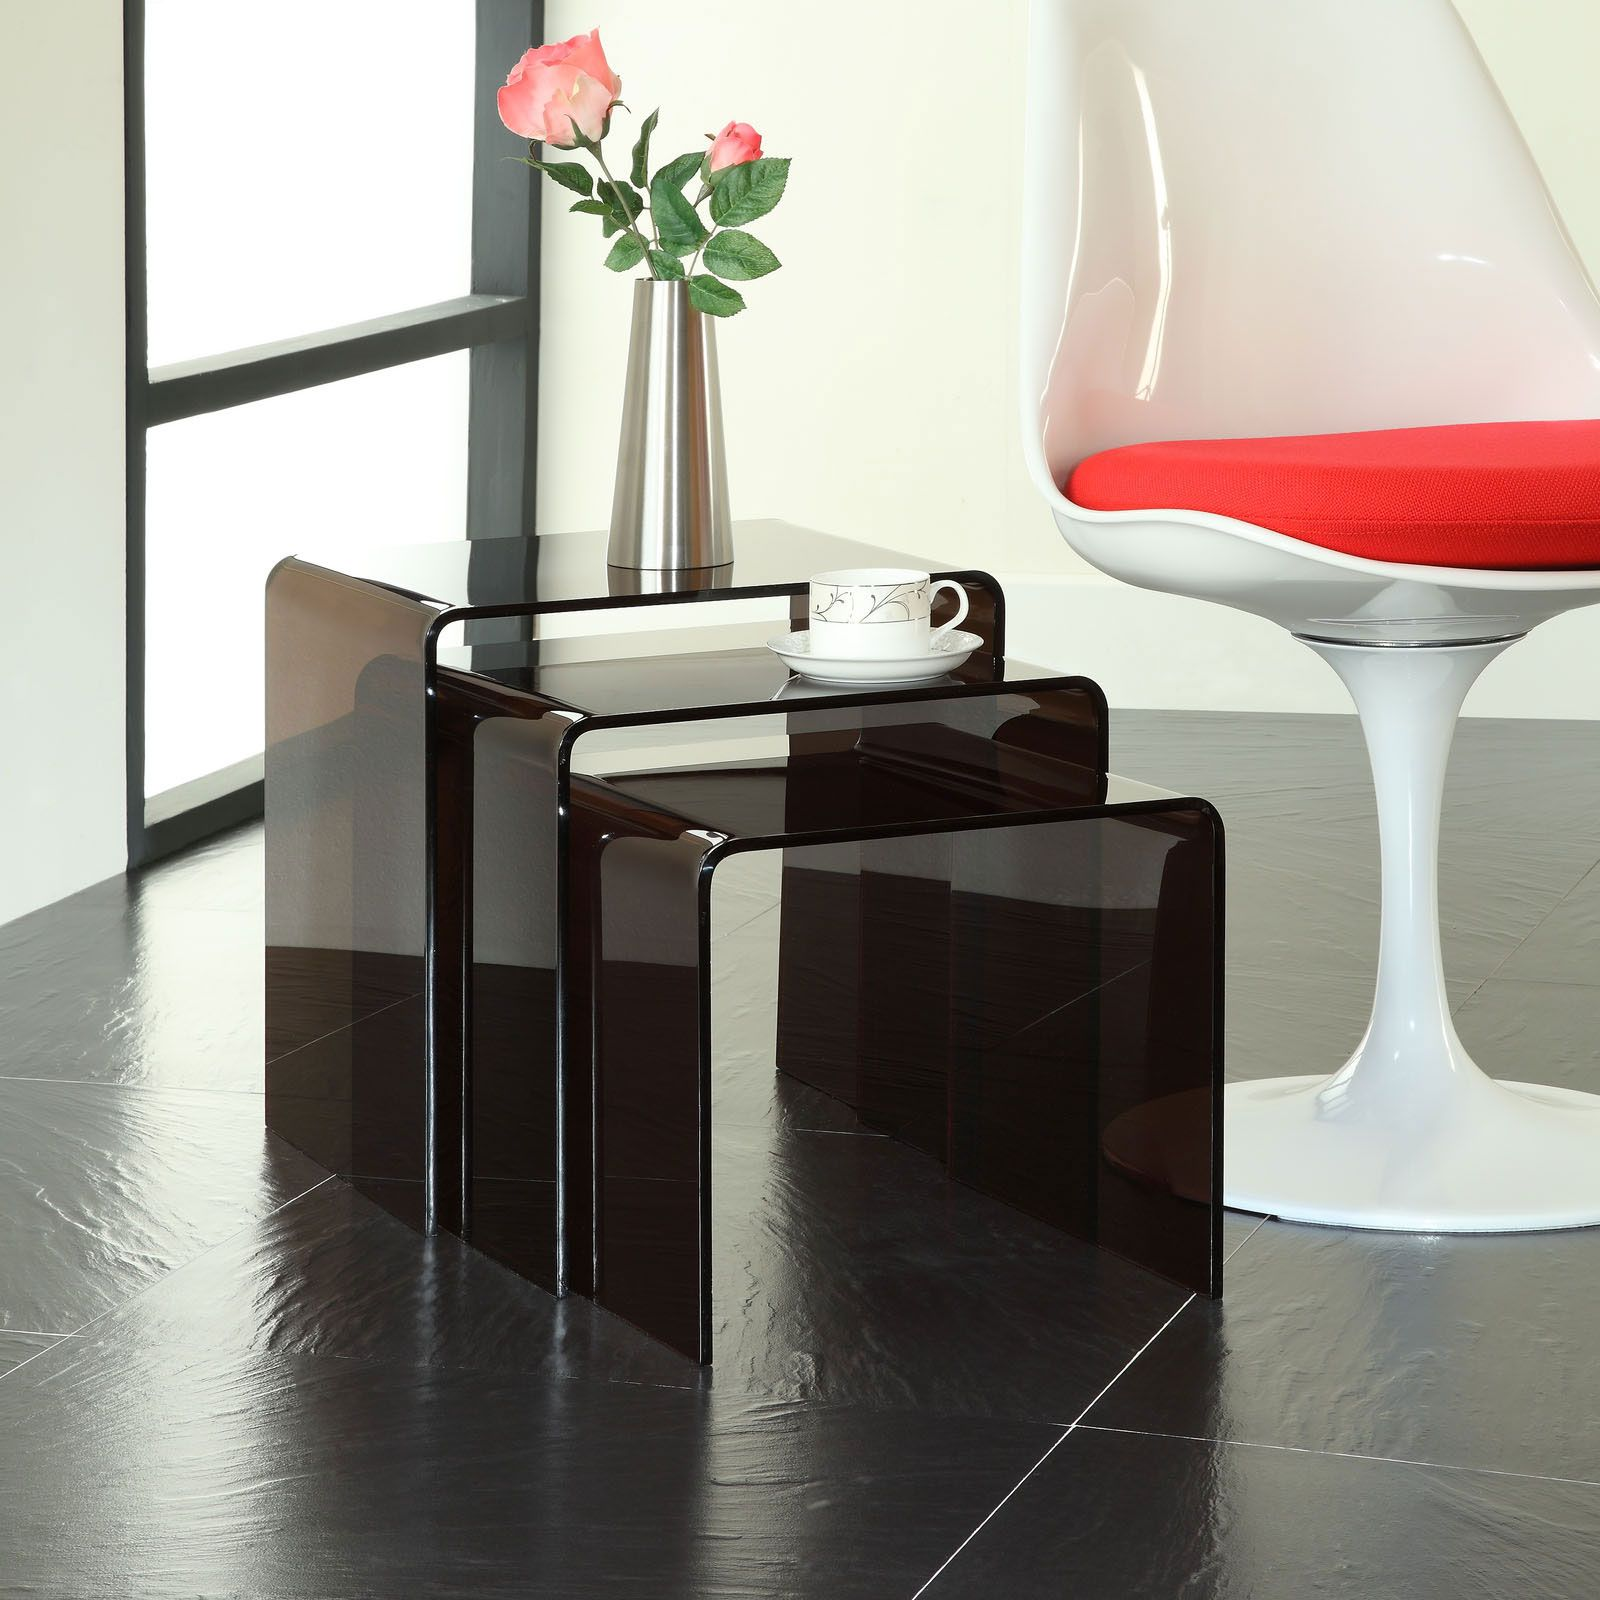 See more clearly with the Clear Nesting Tables. Made of rounded acrylic sheets, the three-piece set of tables keeps large and small spaces organized. Invite guests over, then nest the tables together and clear up the space.